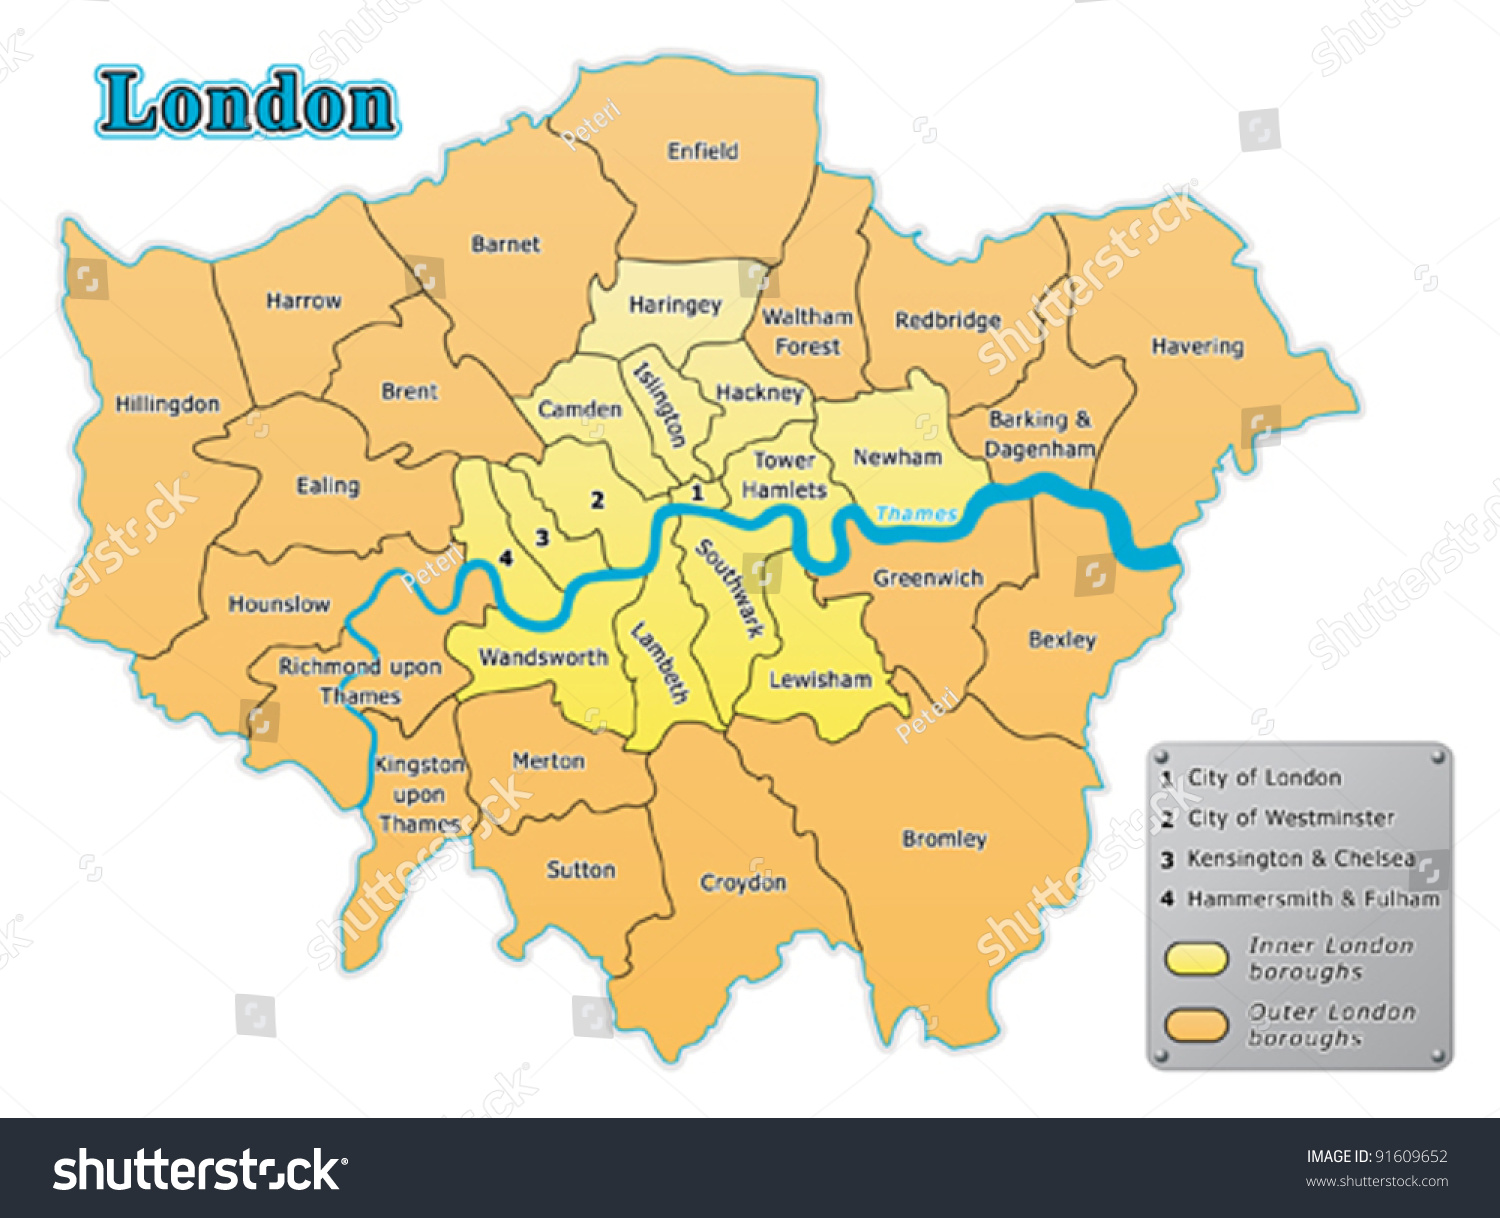 London Map All Boroughs Stock Vector Shutterstock - London map of boroughs